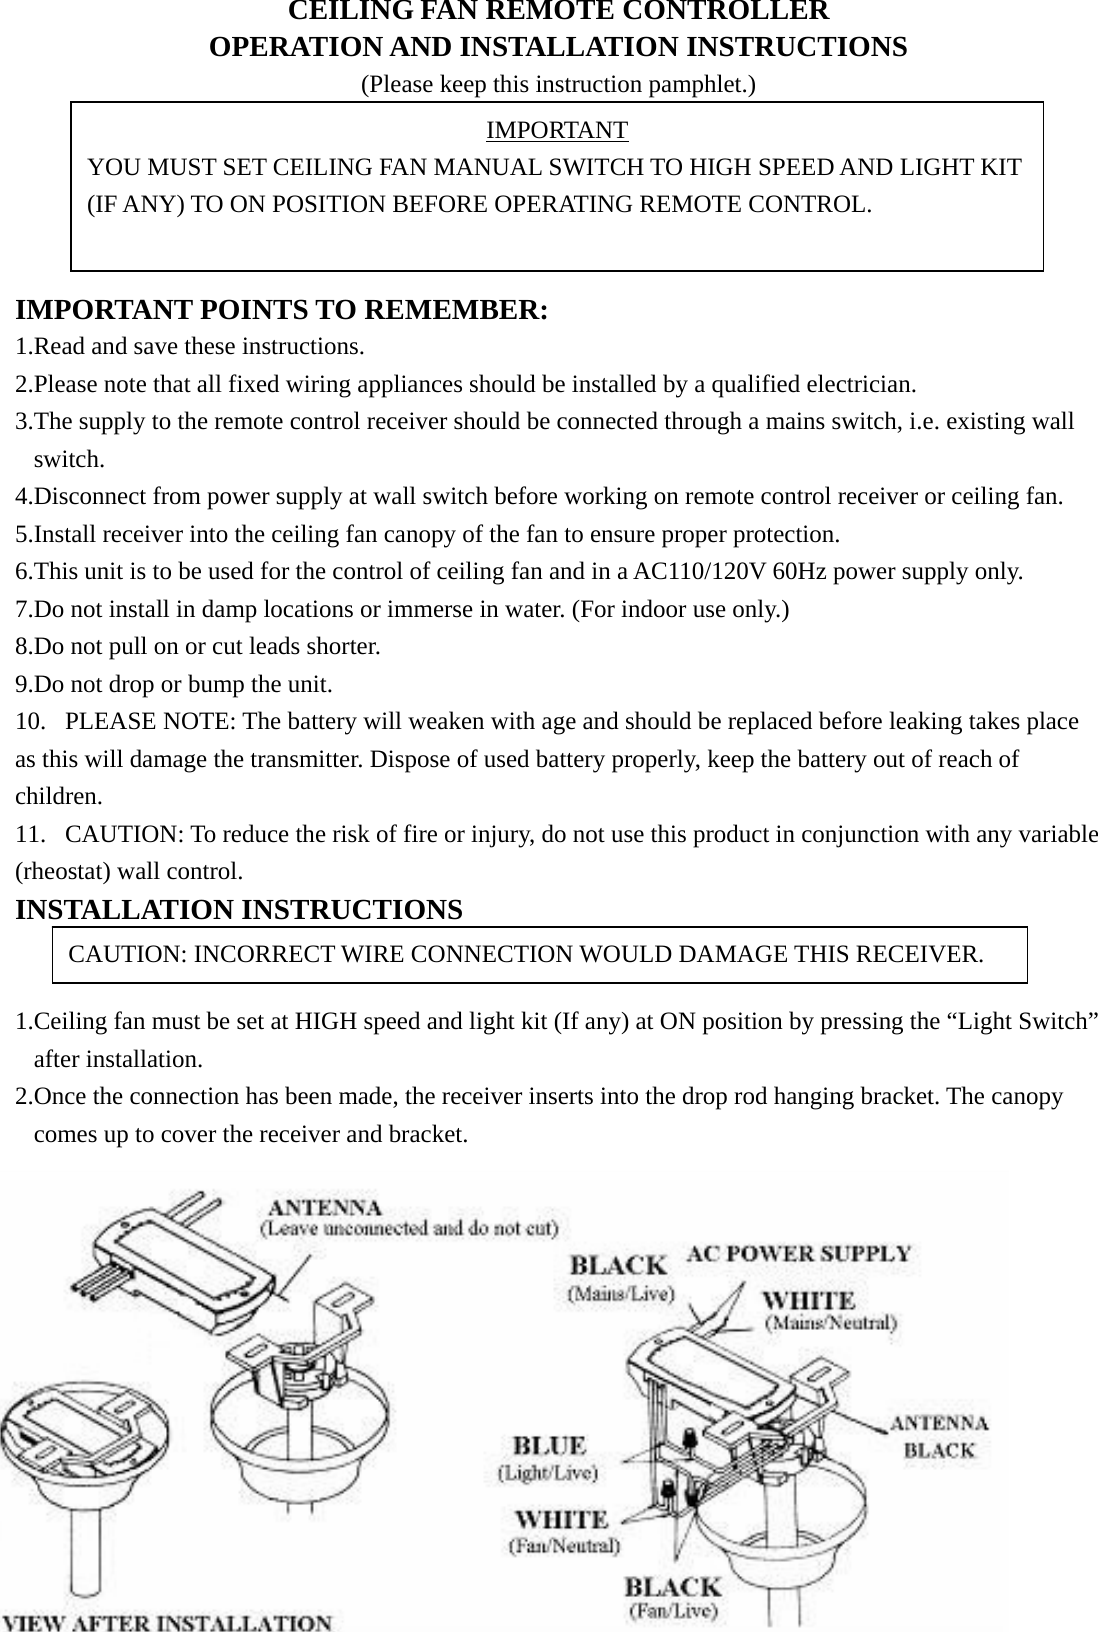 Chungear co ce9601 ceiling fan remote control transmitter user manual publicscrutiny Gallery